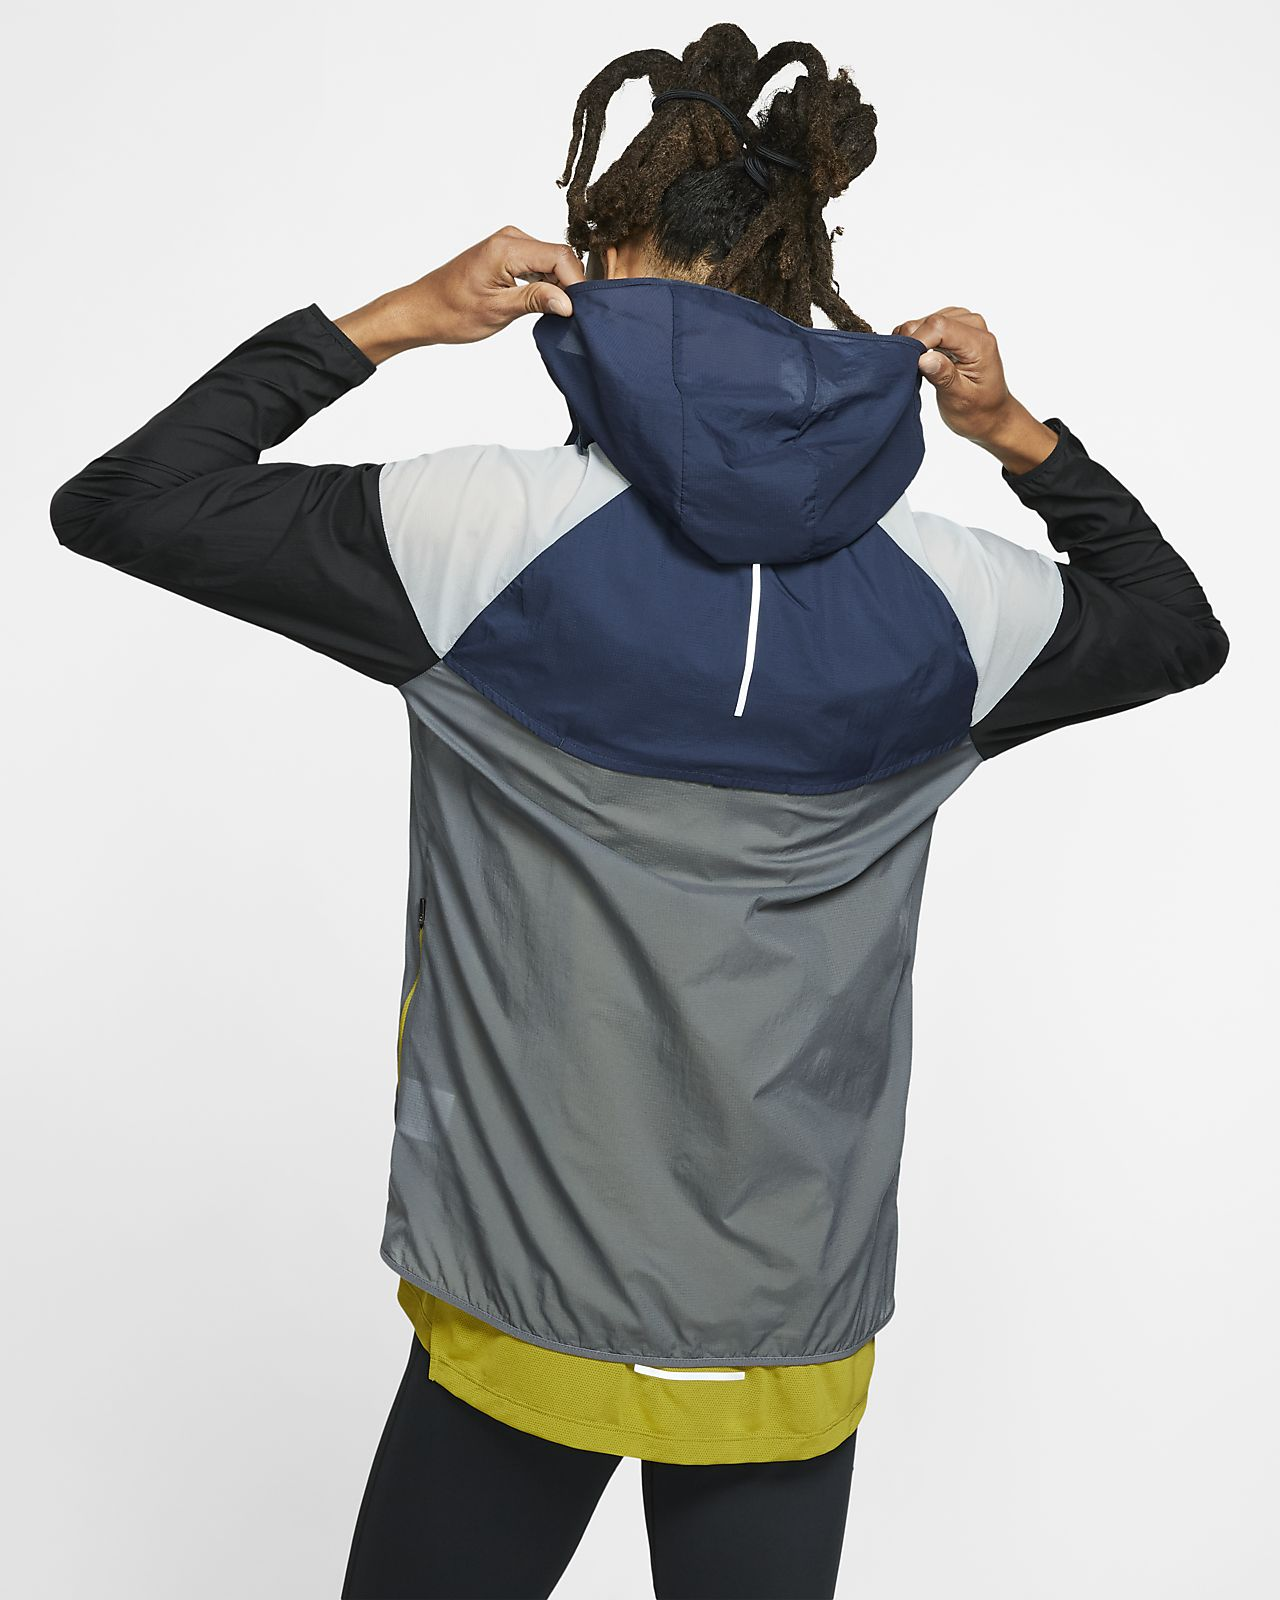 a8c38d230 Low Resolution Nike Windrunner Men's Running Jacket Nike Windrunner Men's  Running Jacket